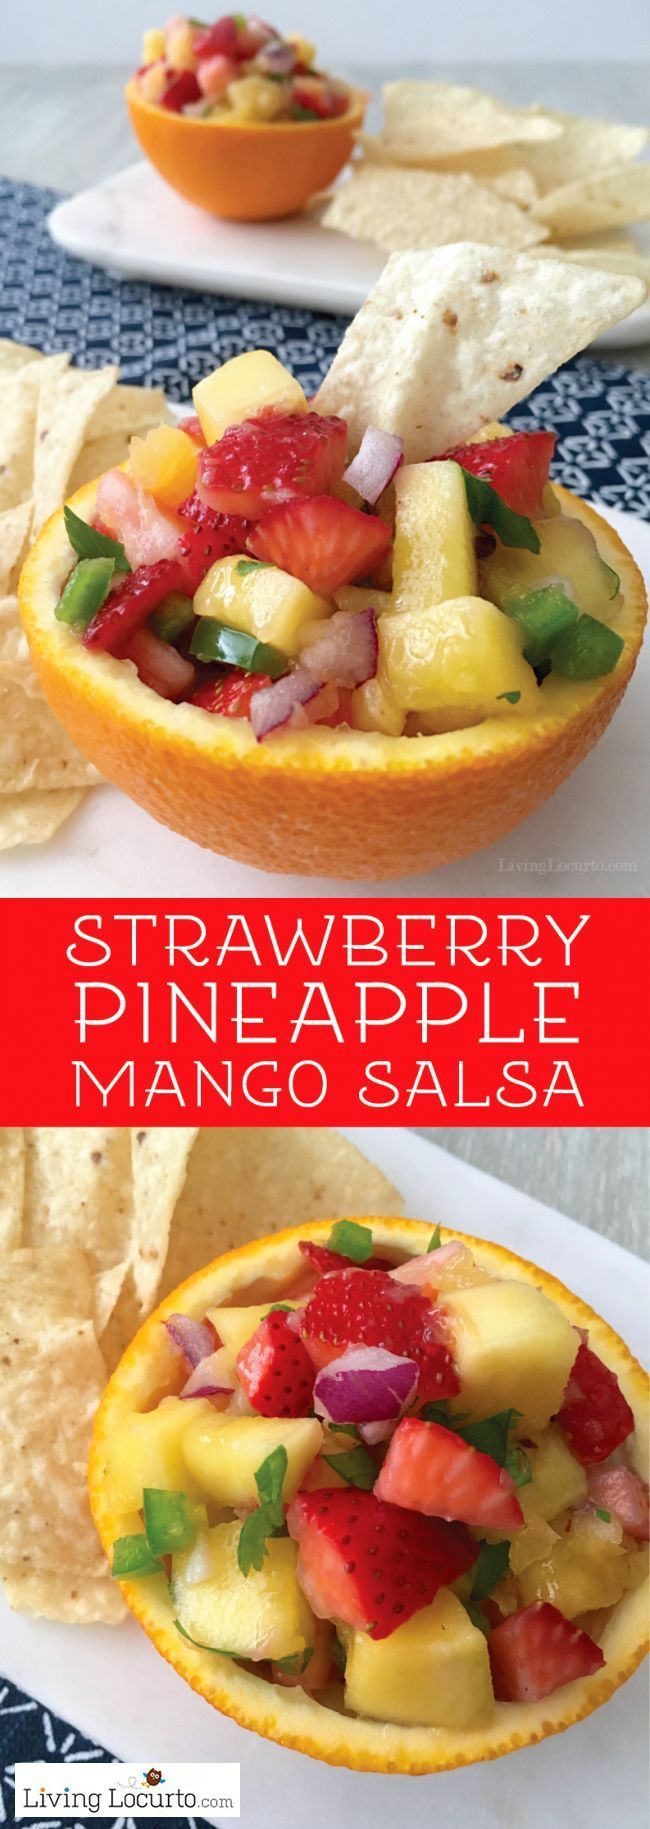 Easy fruit salsa recipe. Sweet and spicy Strawberry Pineapple Mango Salsa is a fabulous healthy dip served in orange bowls! Perfect party food.